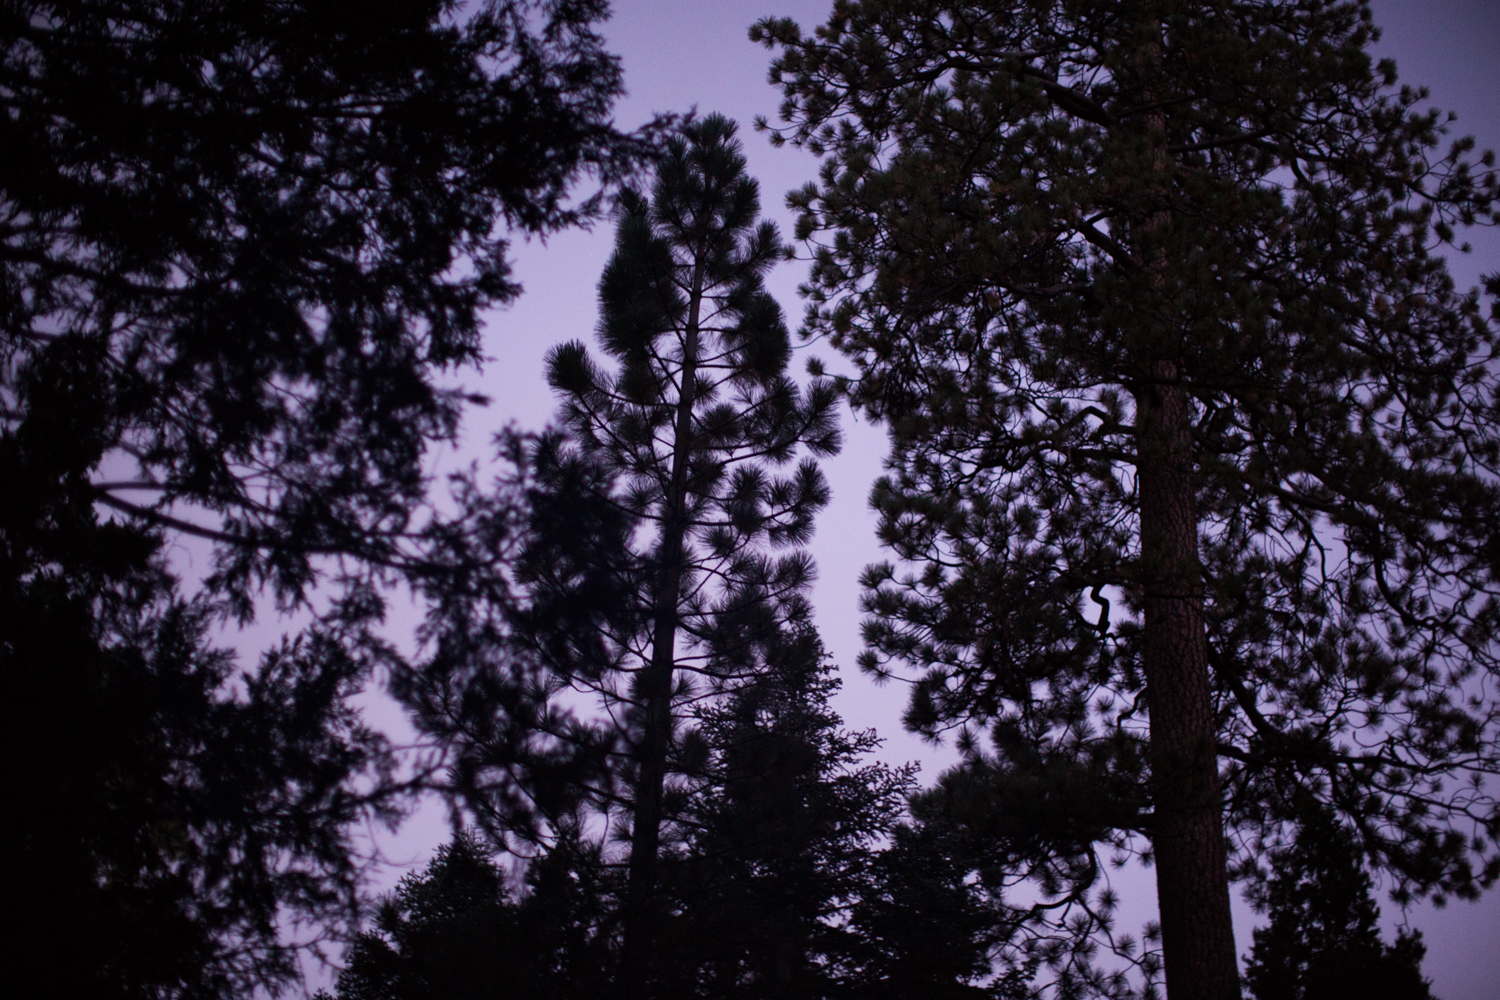 Peering up at the sky at dusk from my campsite. Angeles National Forest, California.